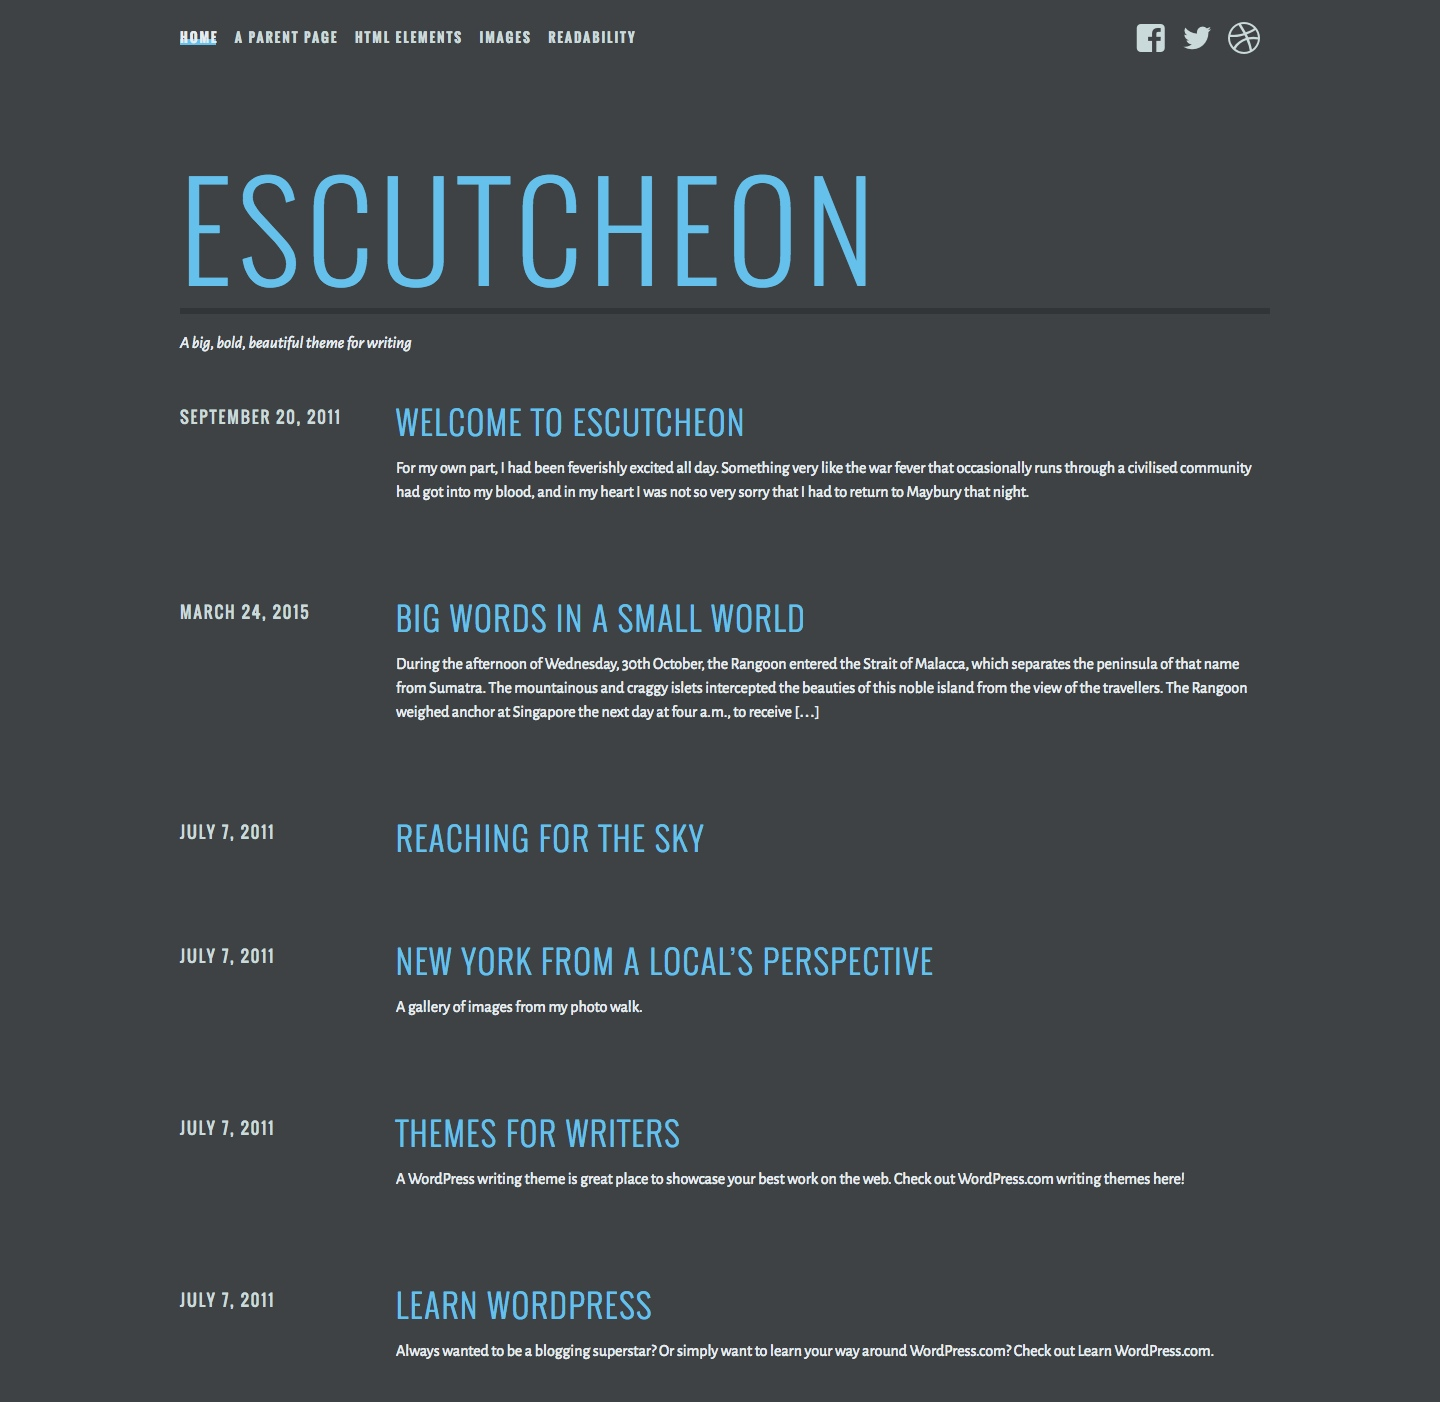 Screenshot of the Escutcheon theme